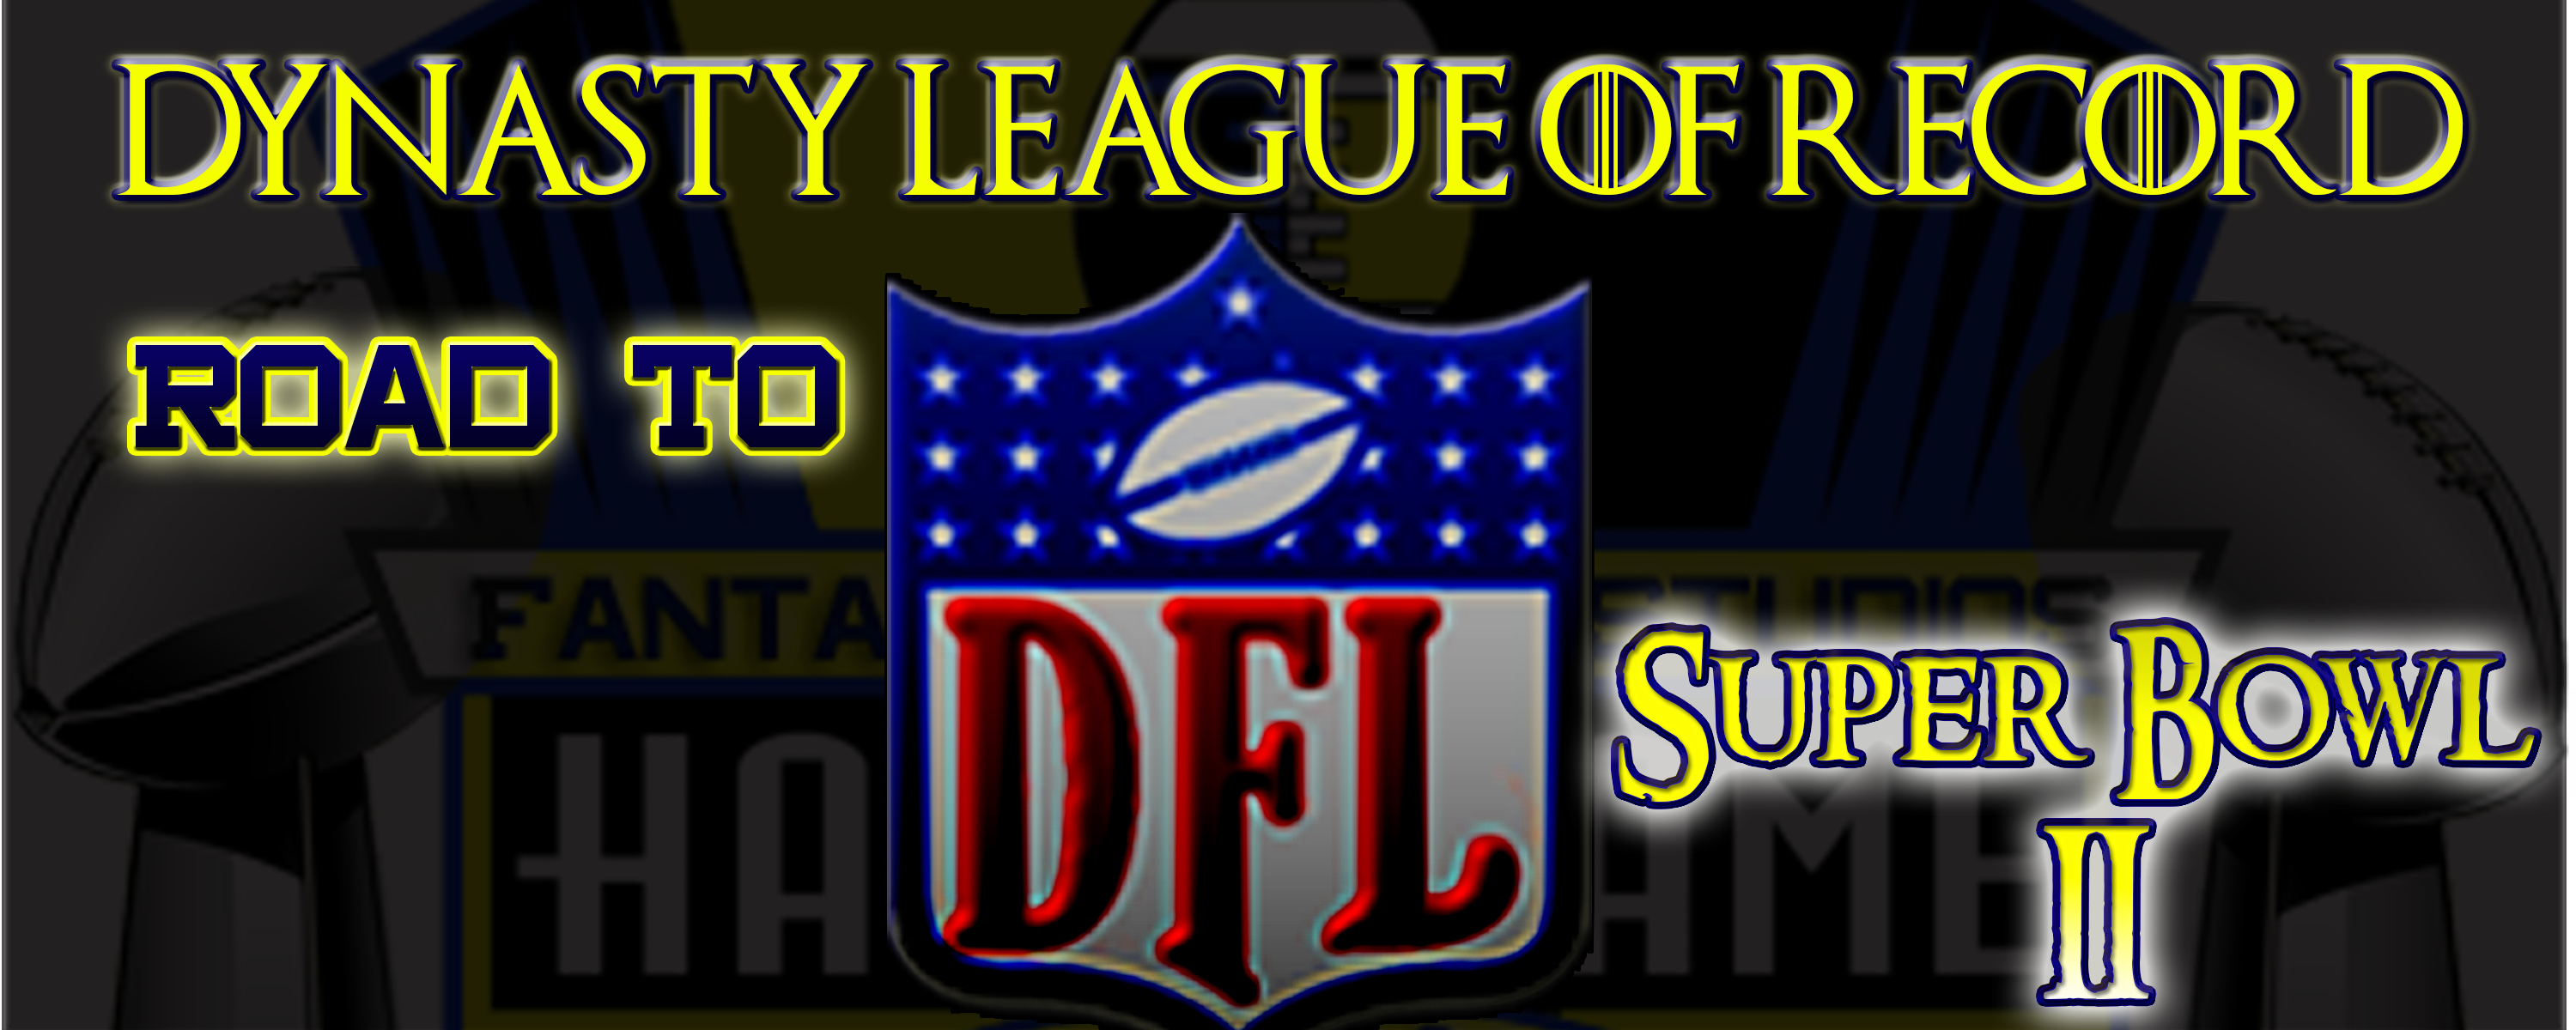 dynasty league fantasy football